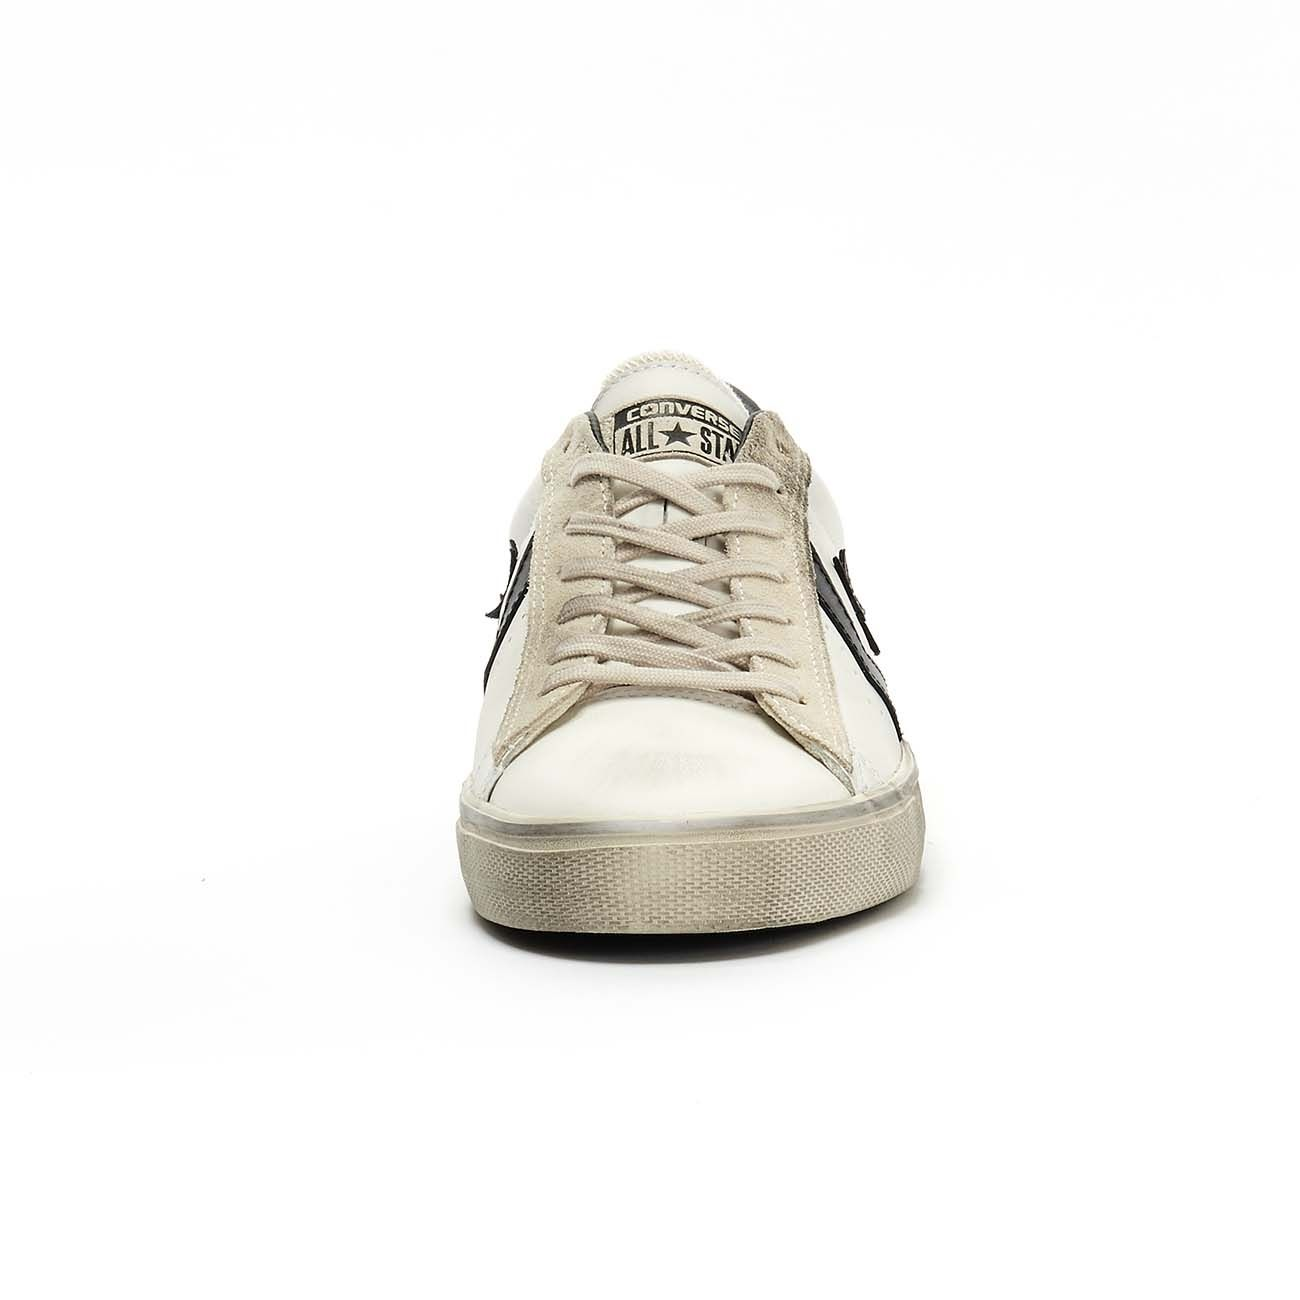 CONVERSE SNEAKERS PRO LEATHER VULC DISTRESSED OX Men White ...